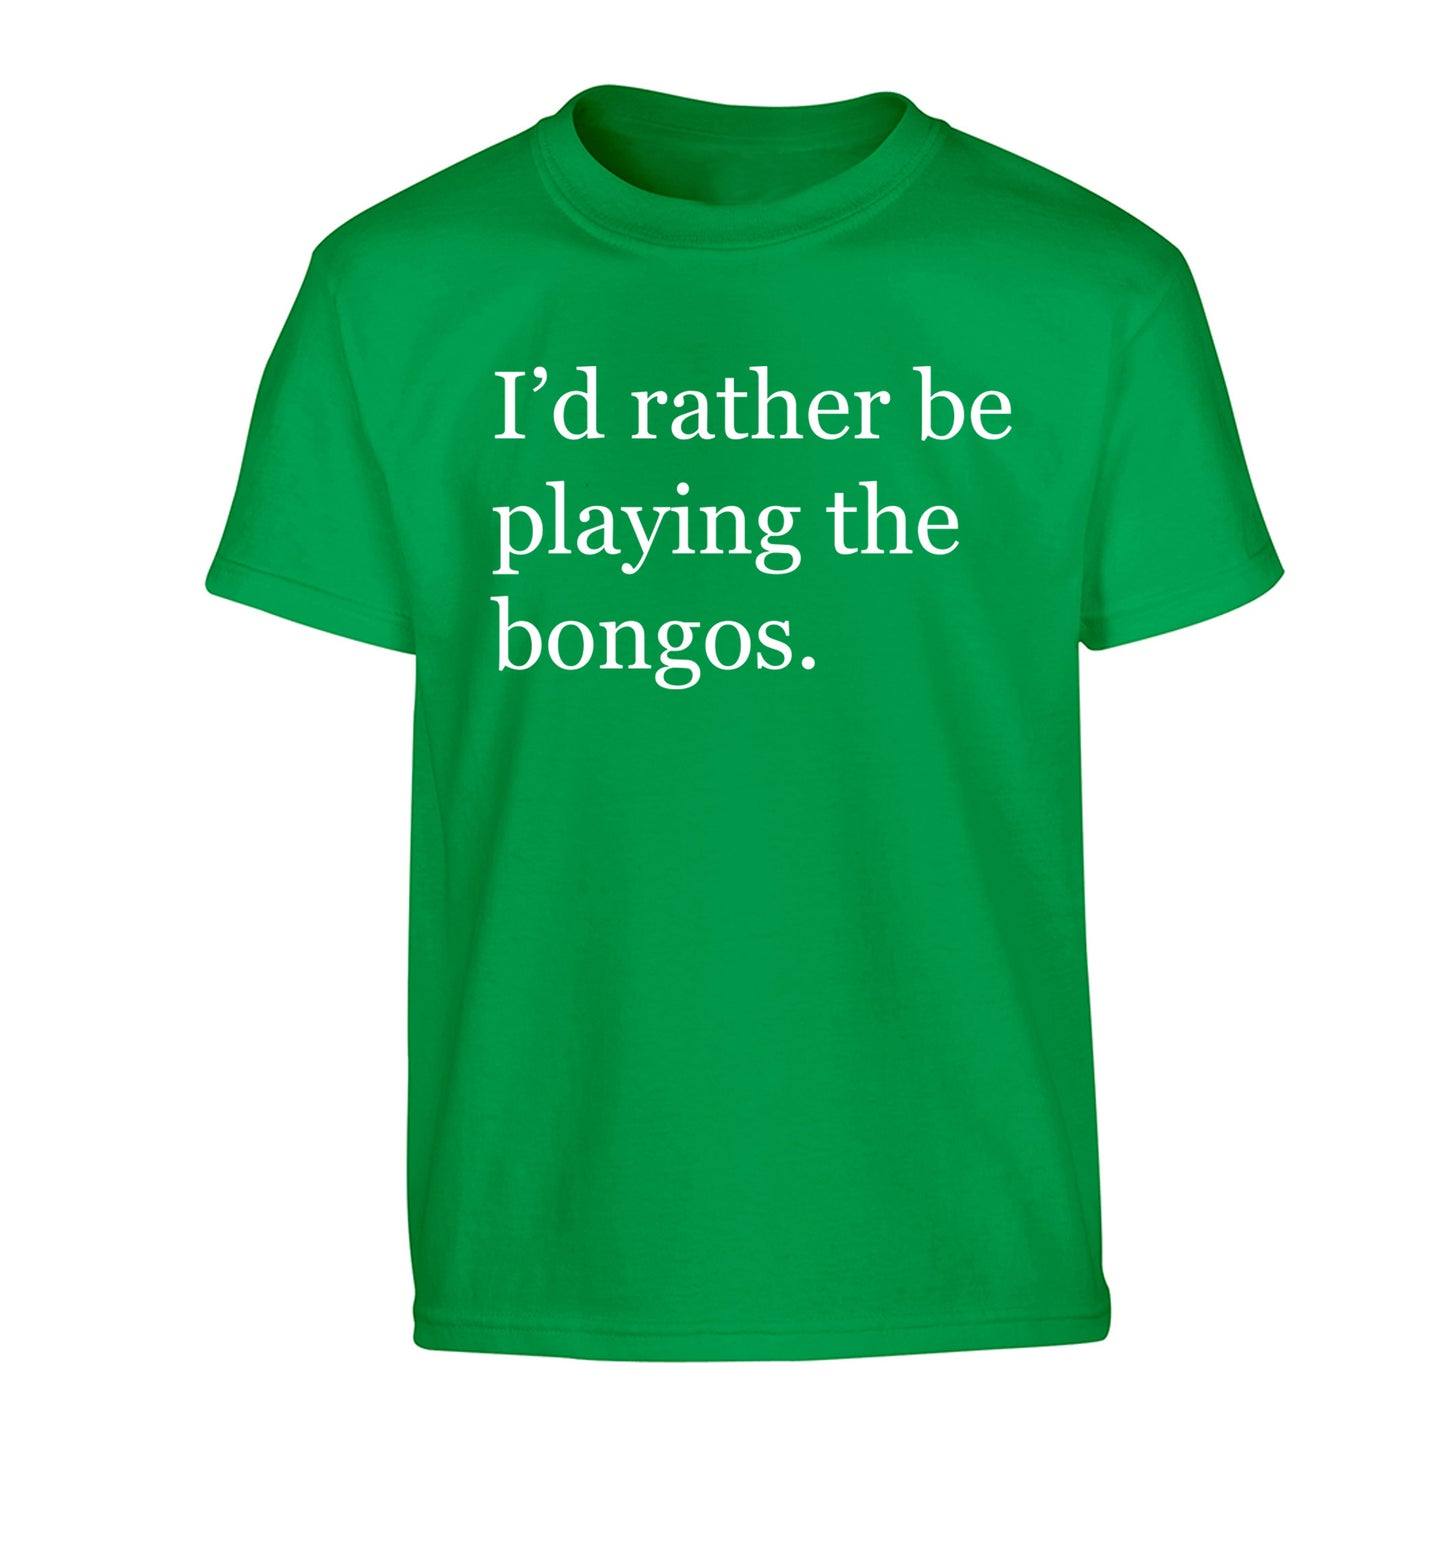 I'd rather be playing the bongos Children's green Tshirt 12-14 Years